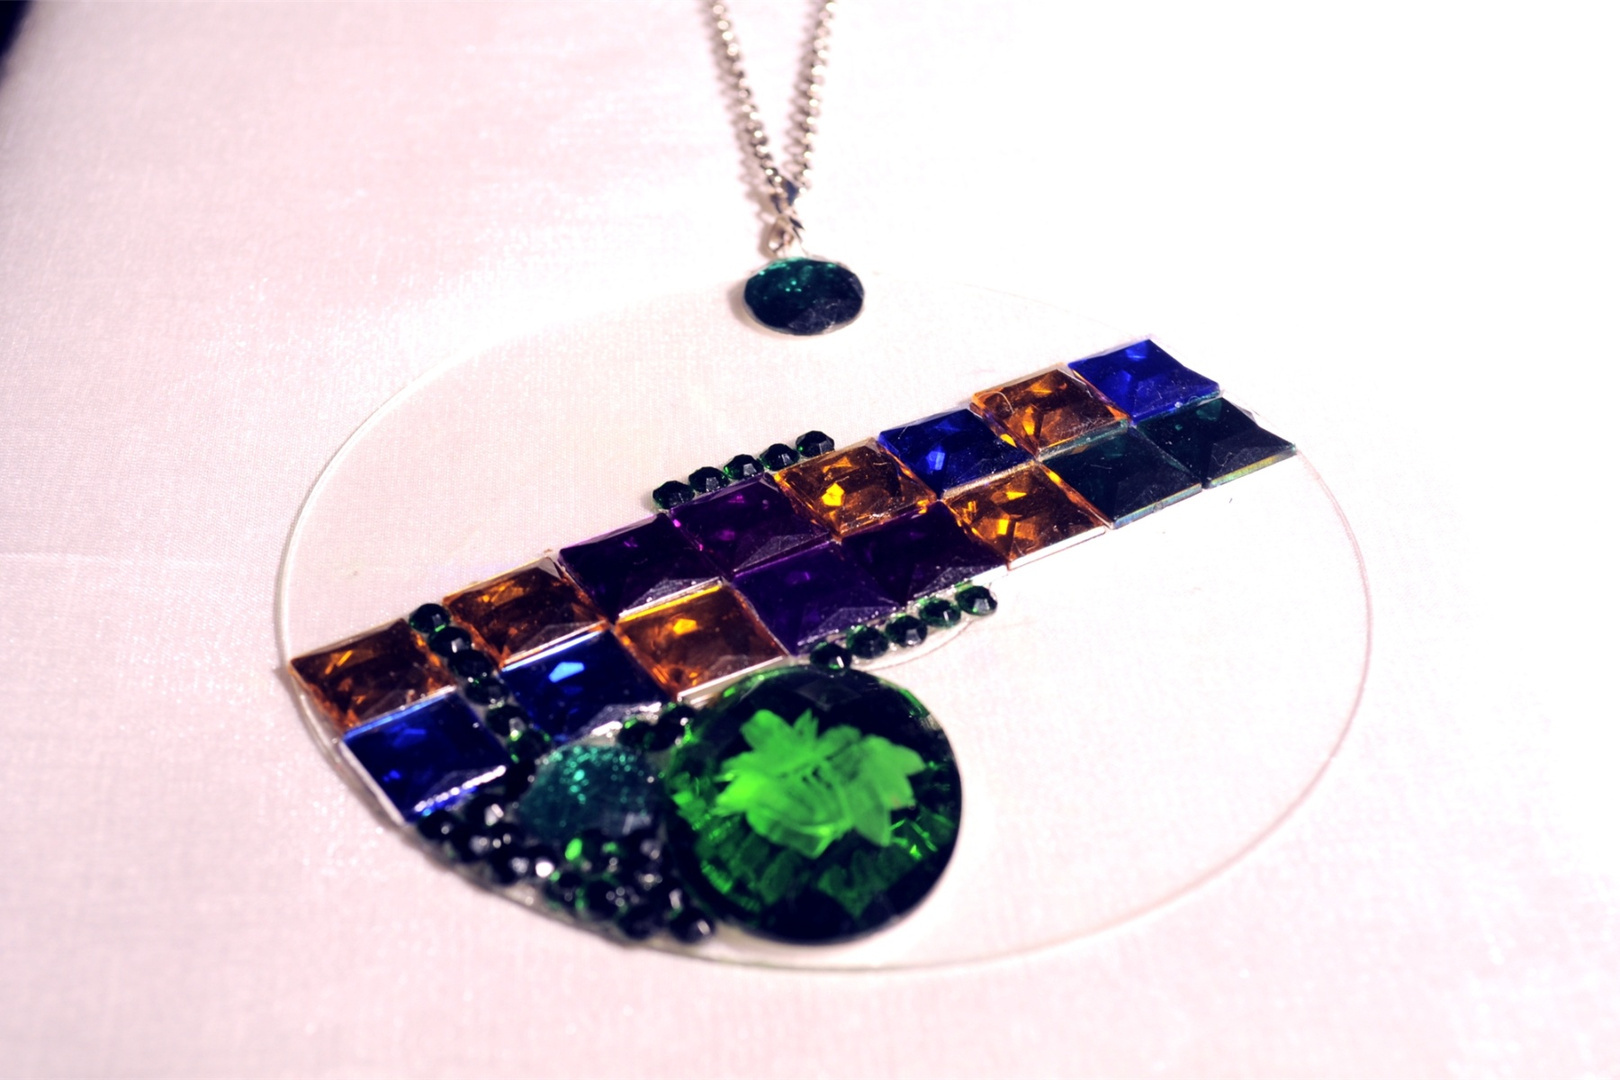 CLEAR DVD NECKLACE with colored stones added.